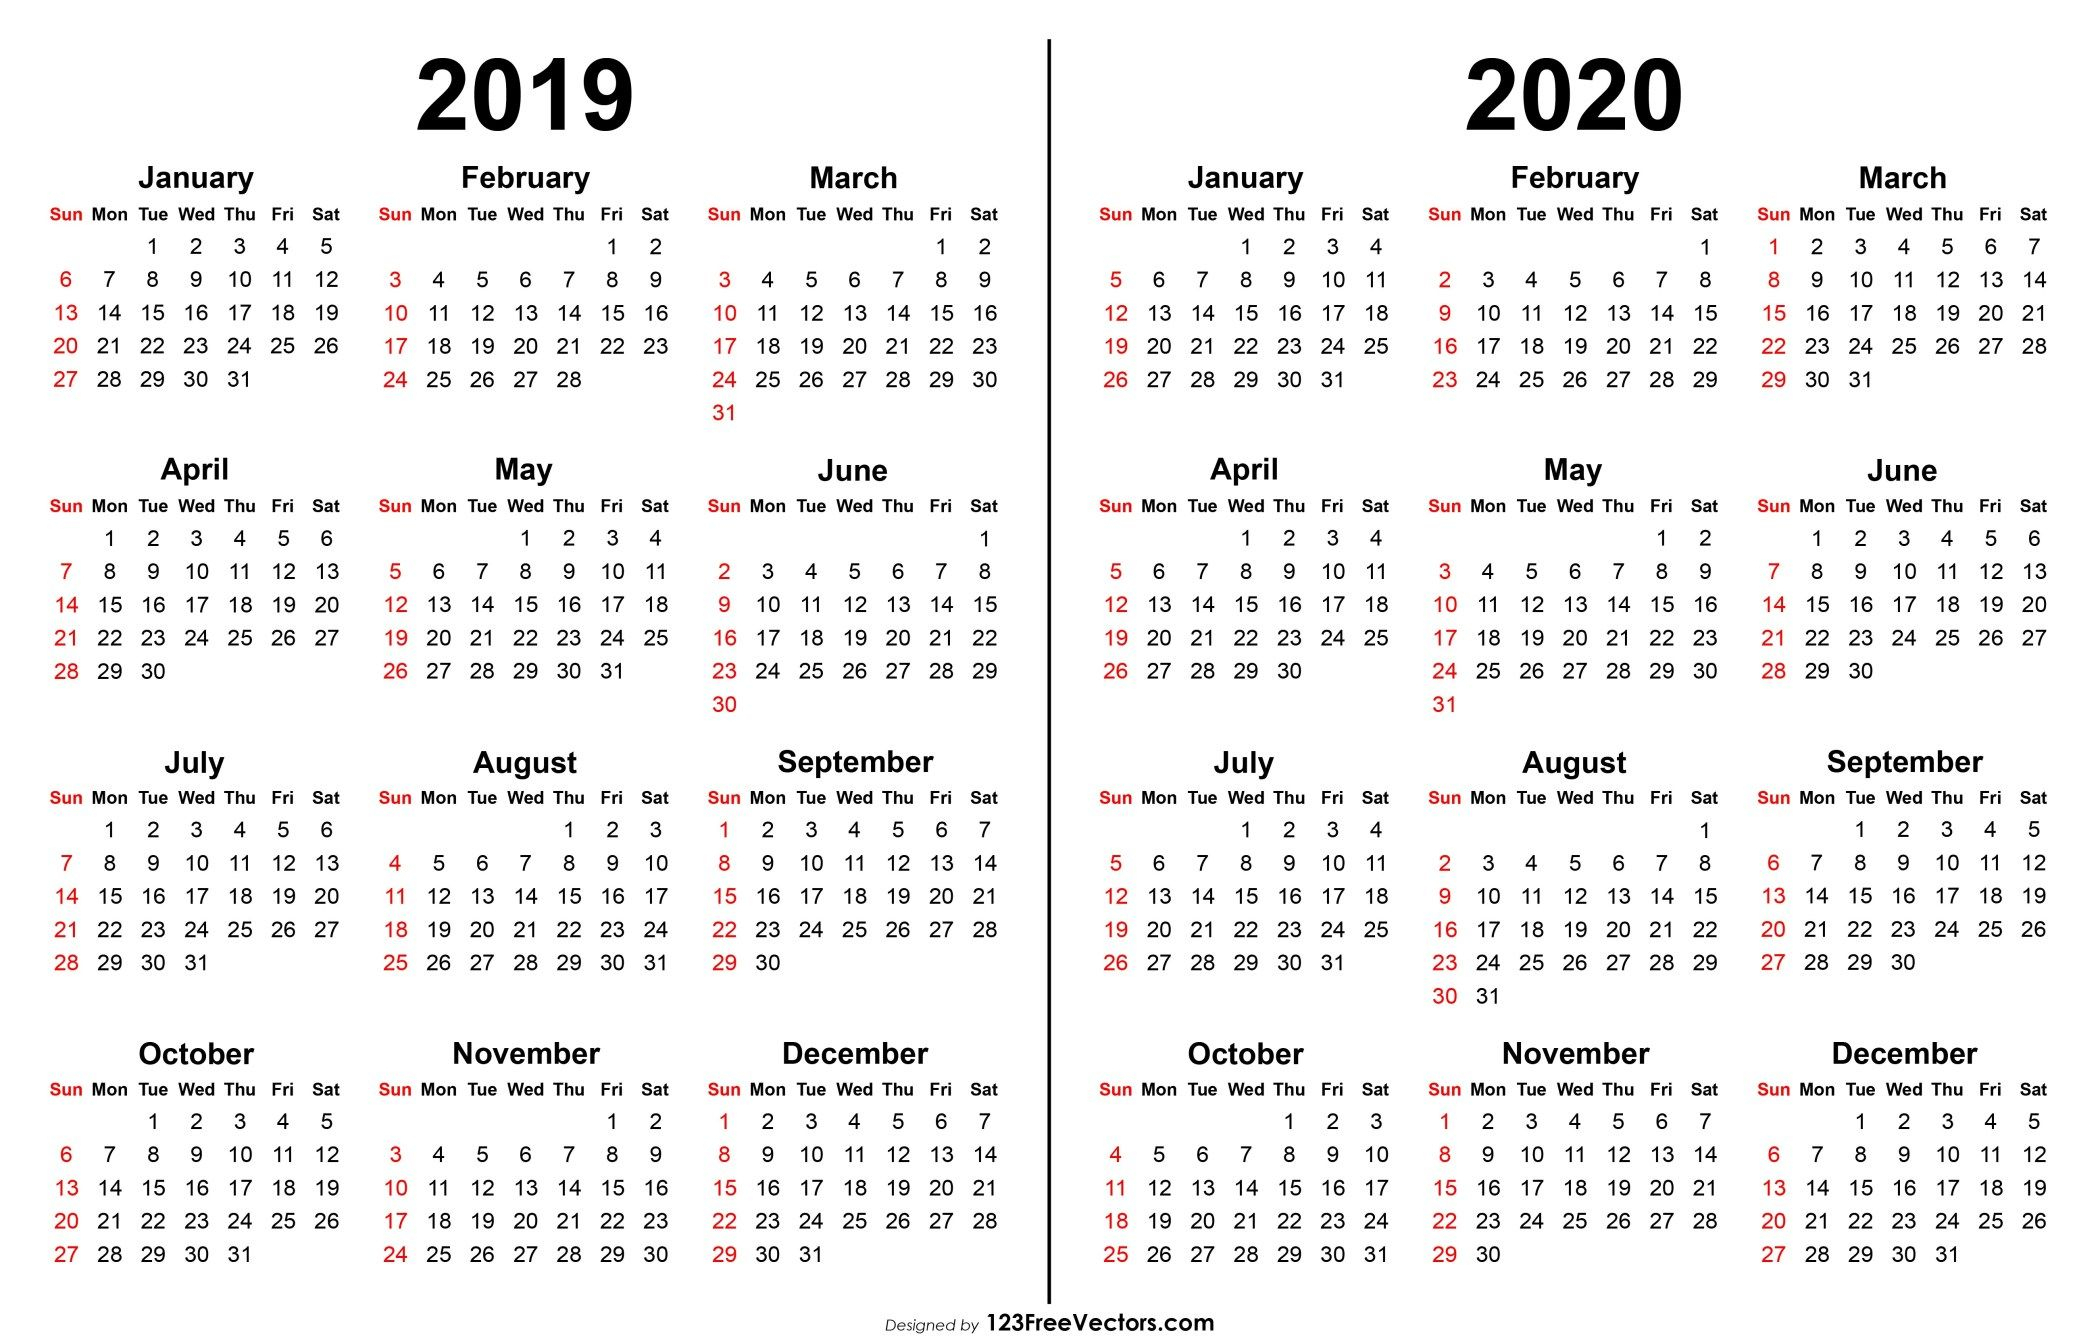 2019 2020 Calendar | Printable Yearly Calendar, Print